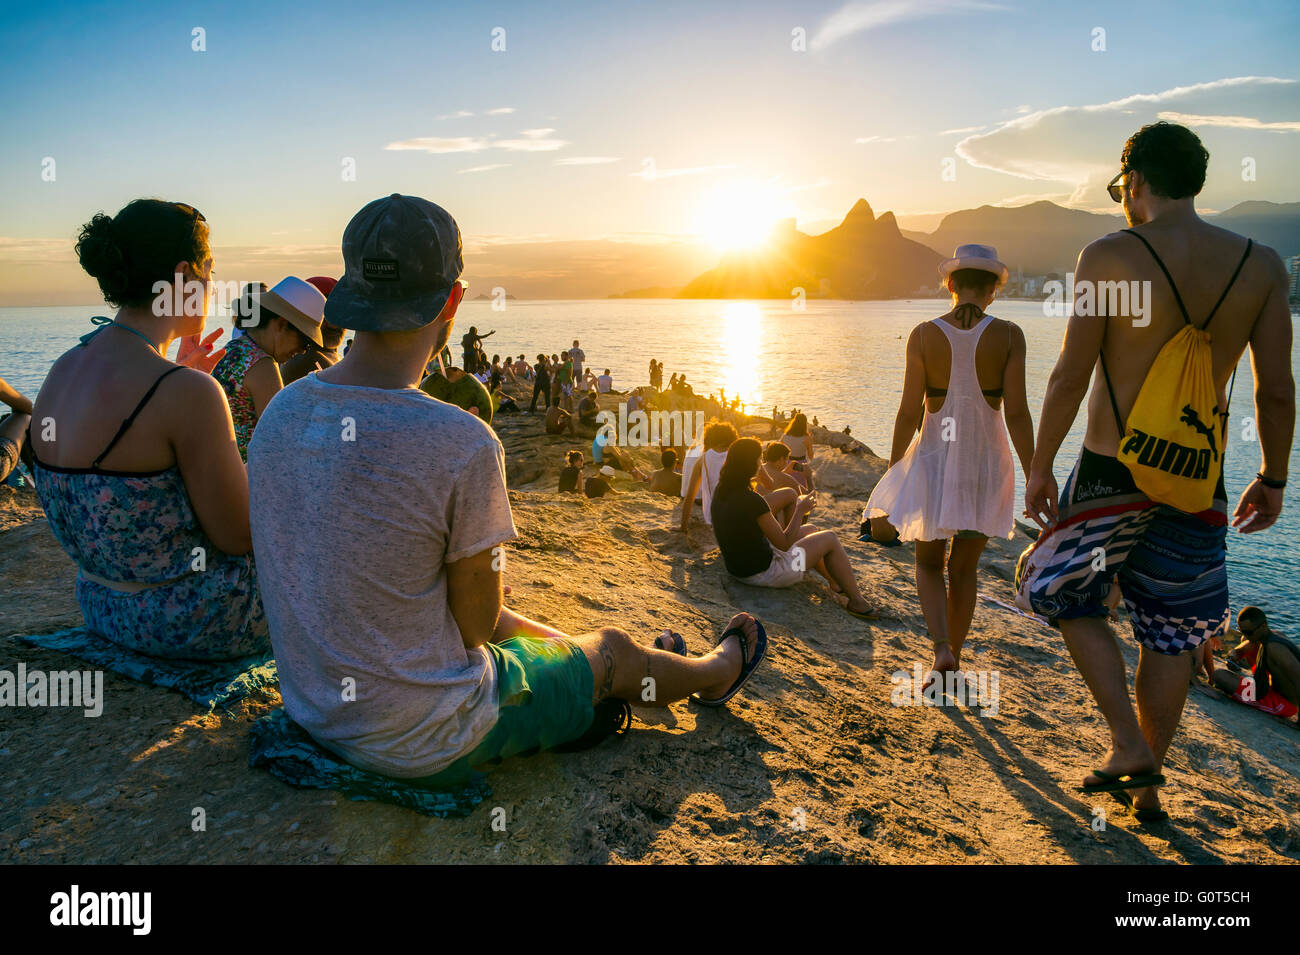 RIO DE JANEIRO - FEBRUARY 26, 2016: Crowds of people gather to watch the sunset on the rocks at Arpoador in a popular - Stock Image